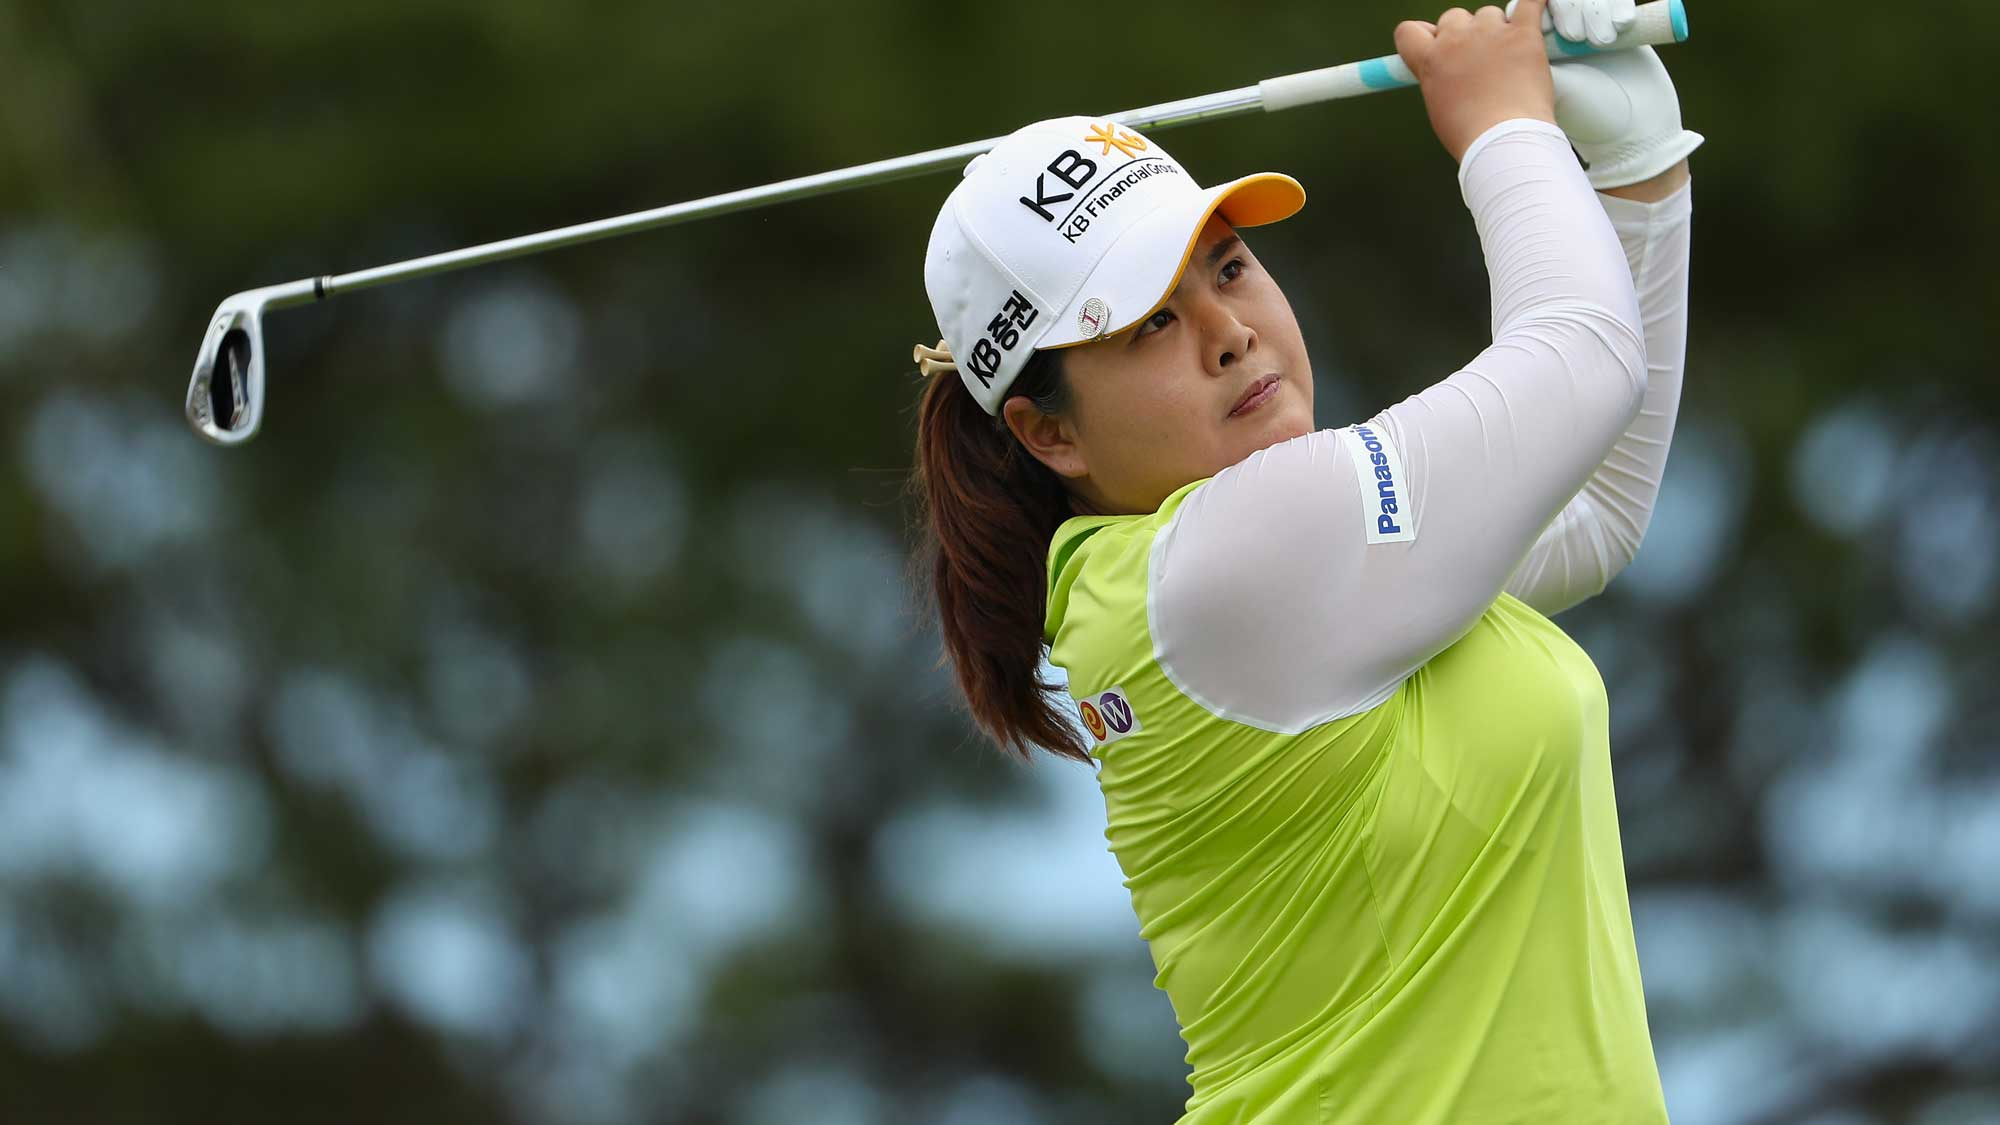 Inbee Park of the Republic of Korea plays a tee shot on the eighth hole during the third round of the LPGA LOTTE Championship Presented By Hershey